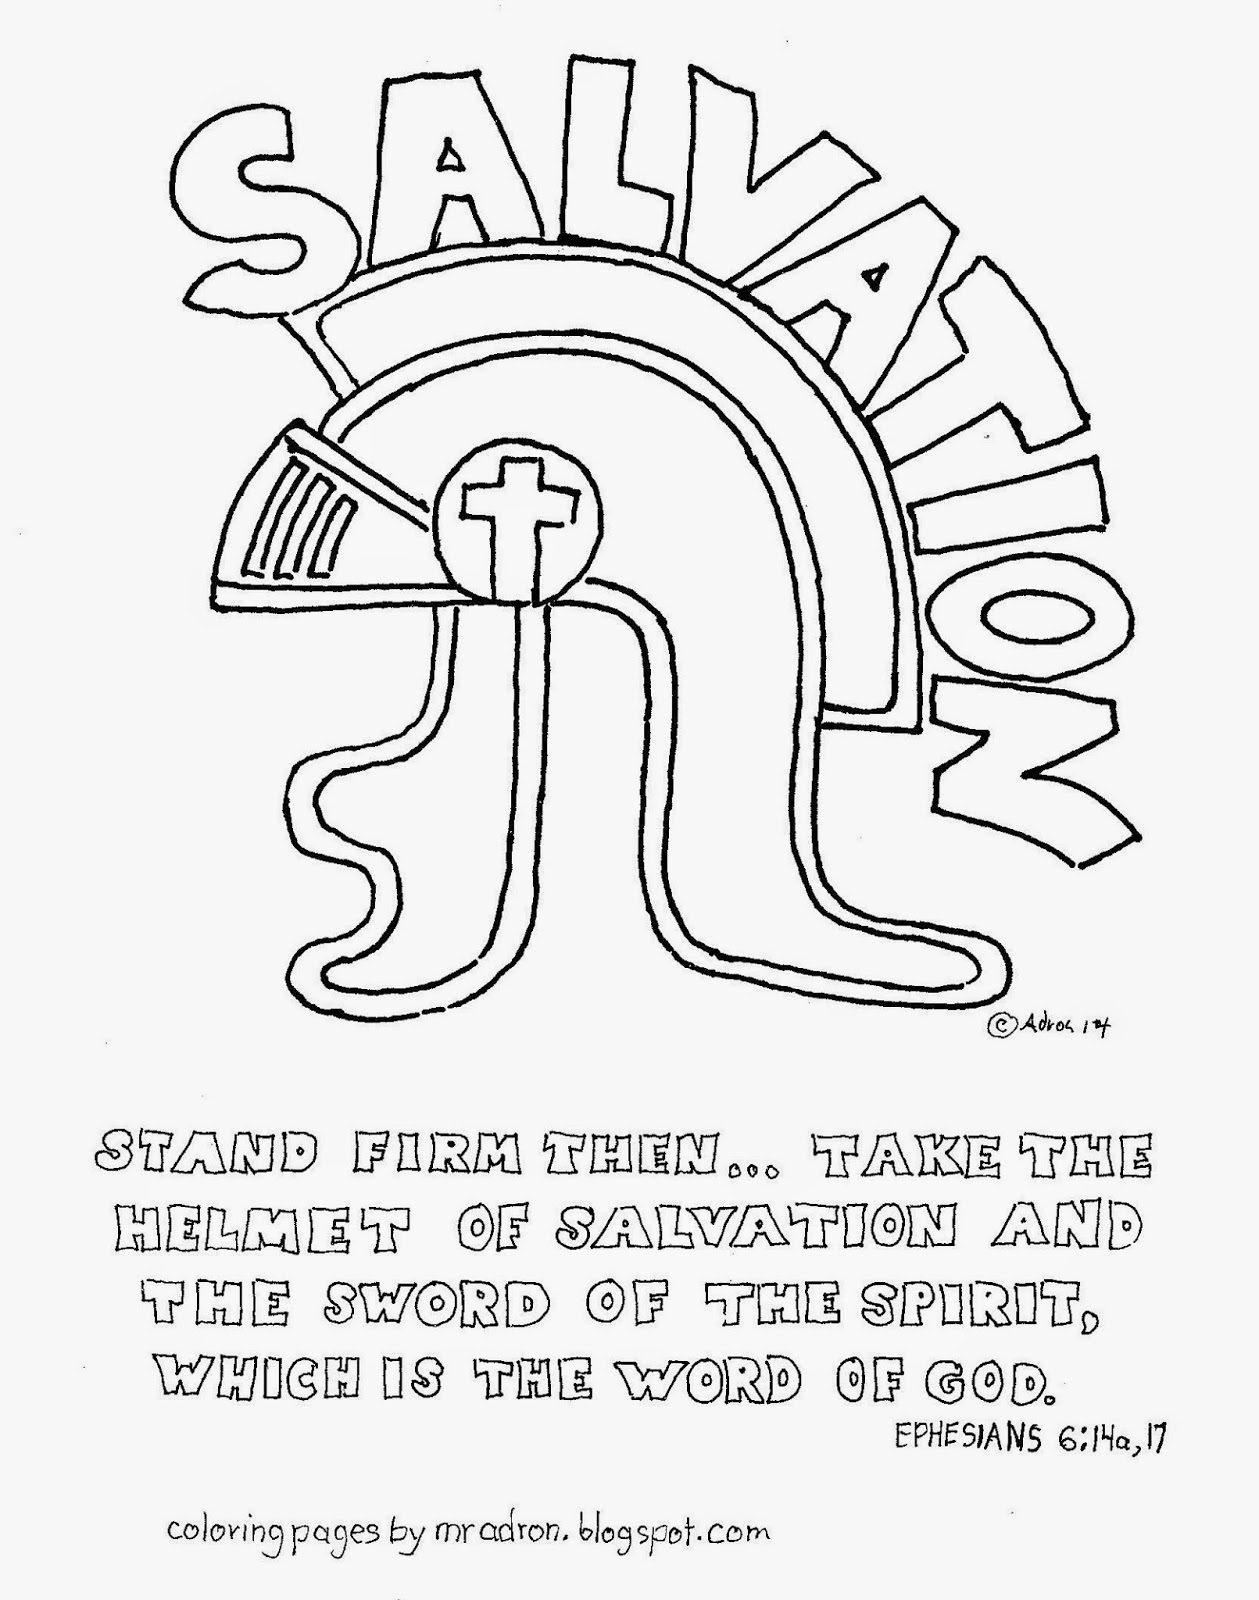 Coloring Pages For Kids By Mr Adron The Helmet Of